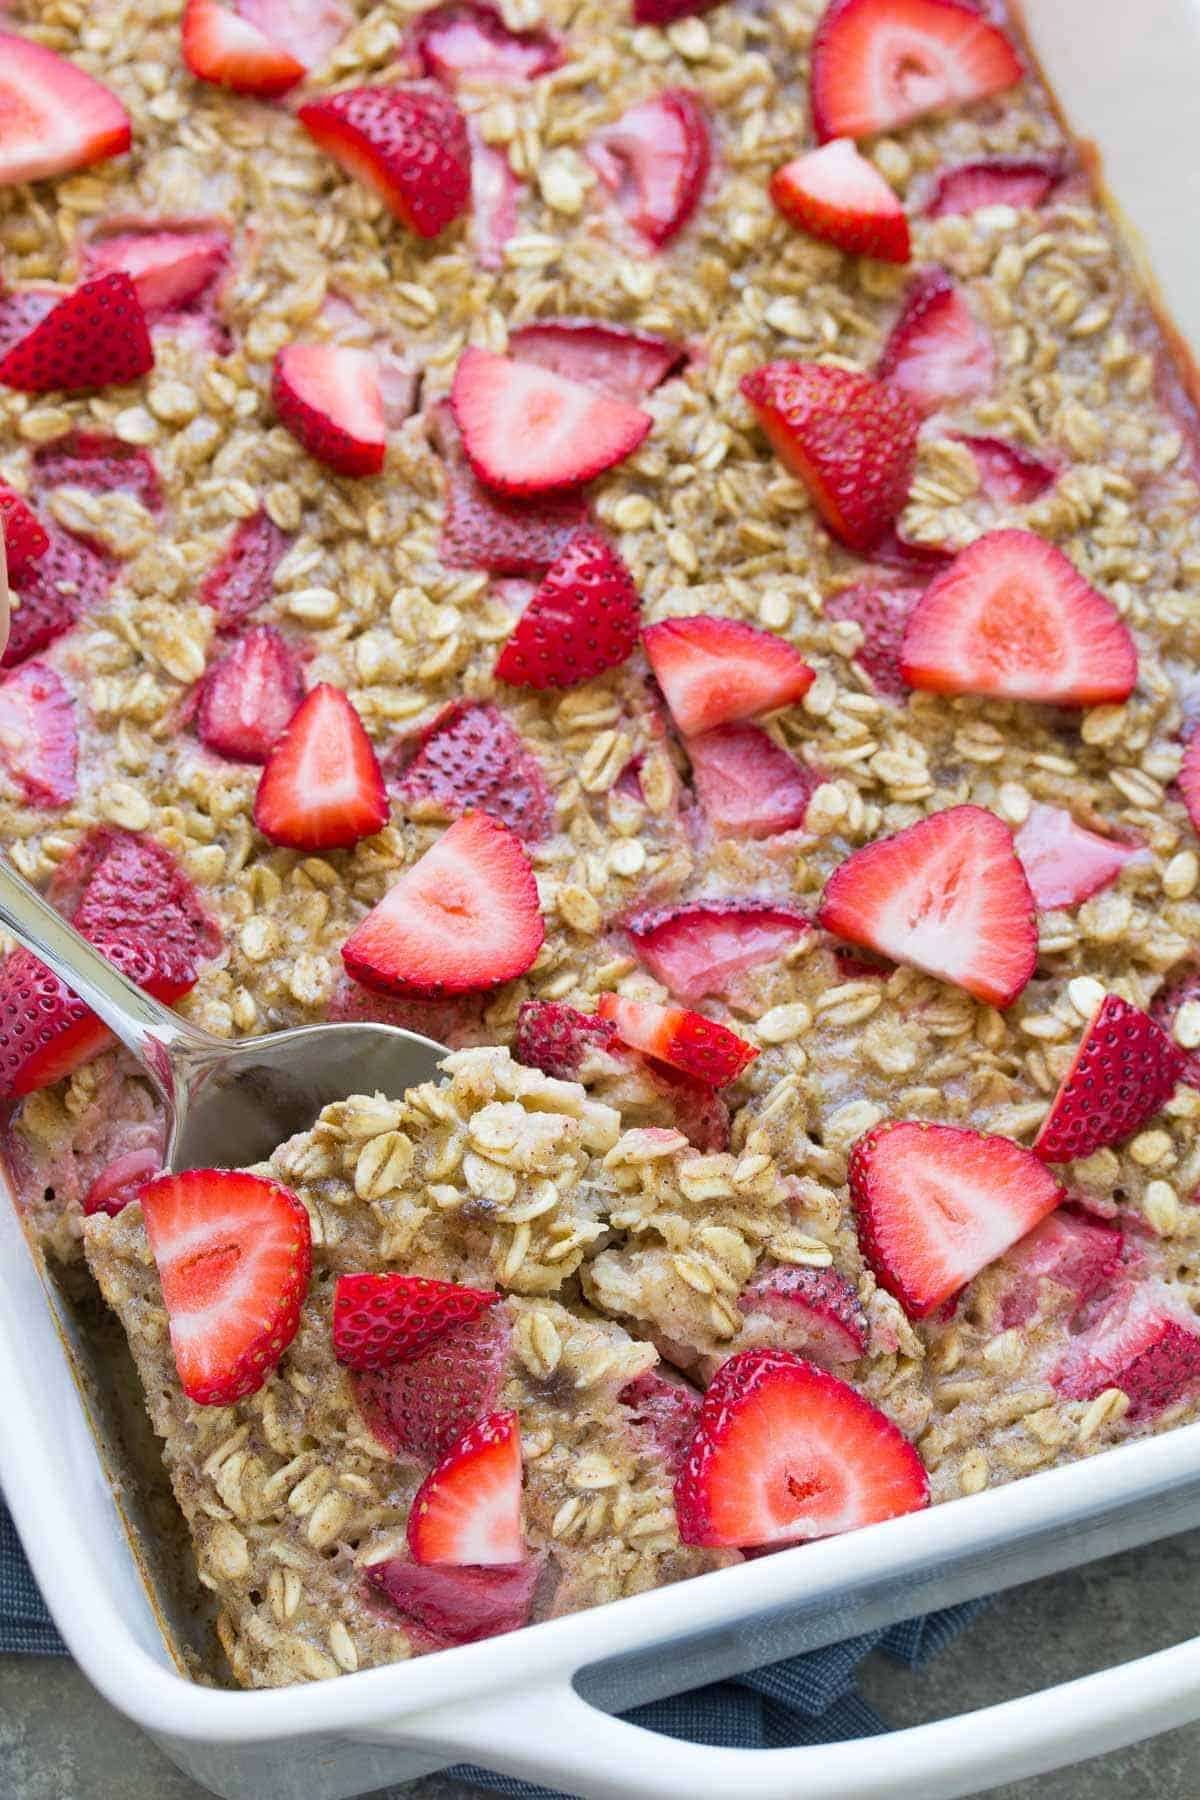 strawberry-baked-oatmeal-1200-8532